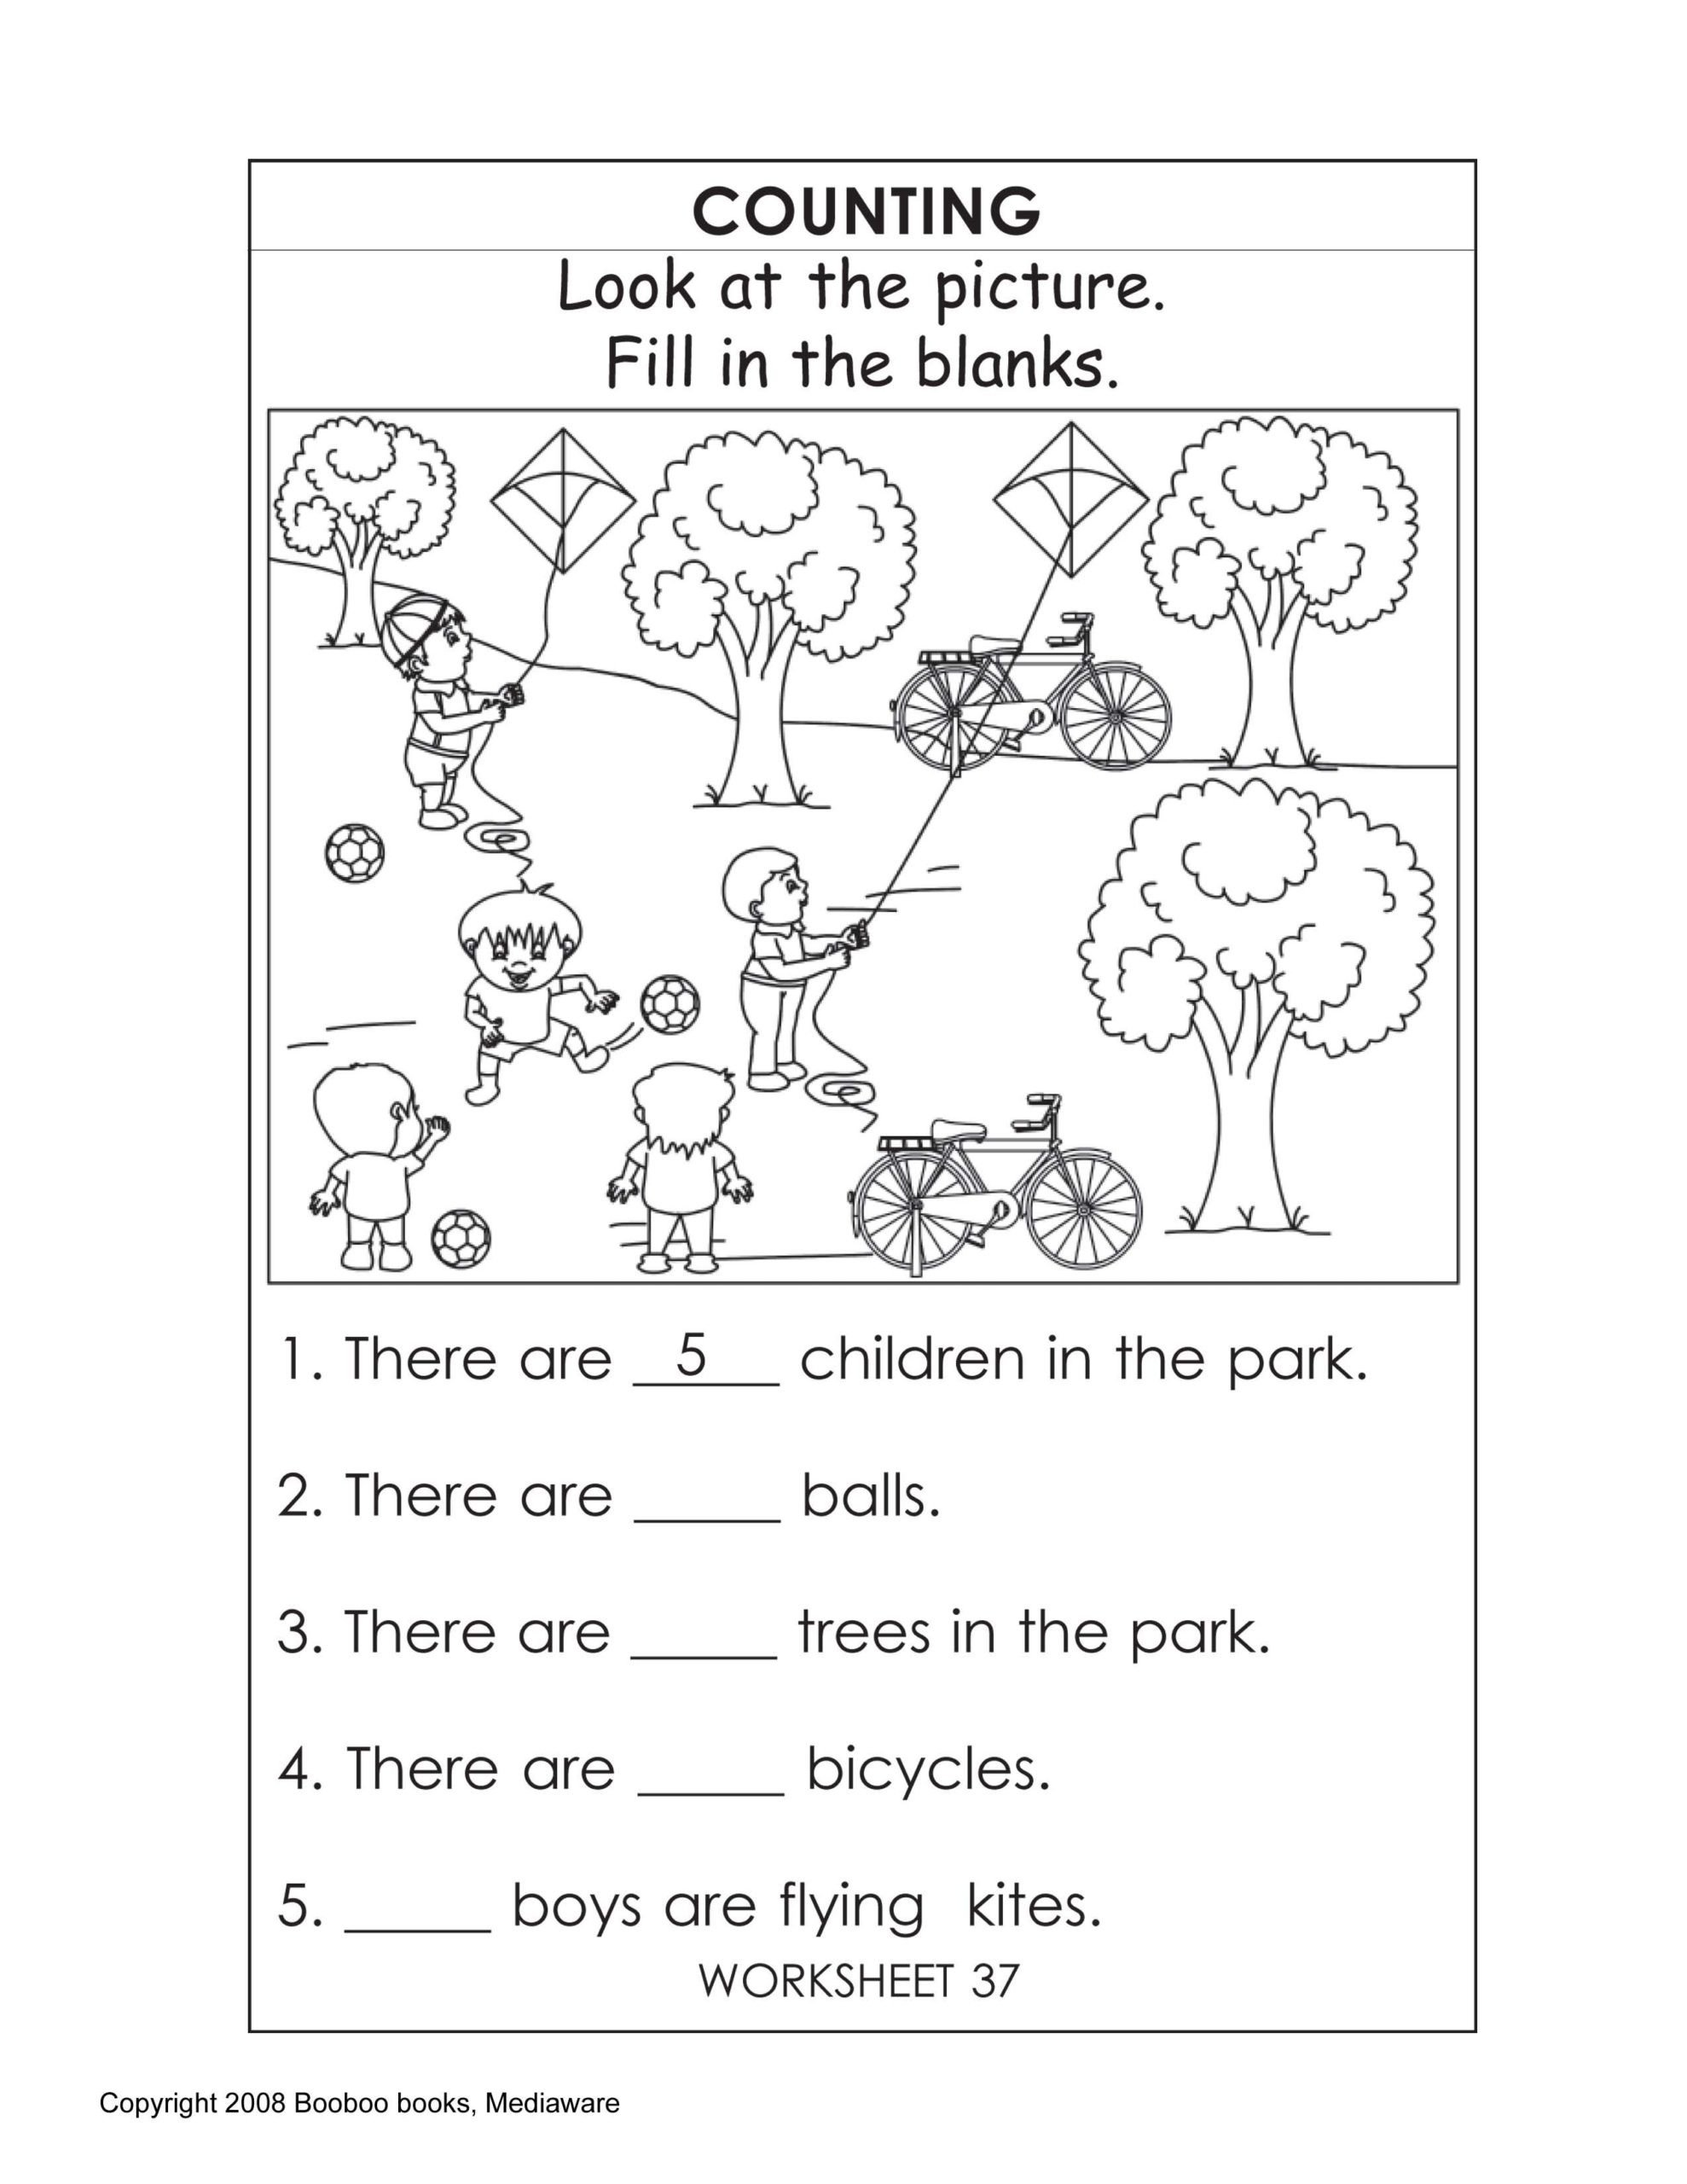 7th Grade Science Worksheets Printable Worksheet Printable Pre Writing Worksheets Easy Games for